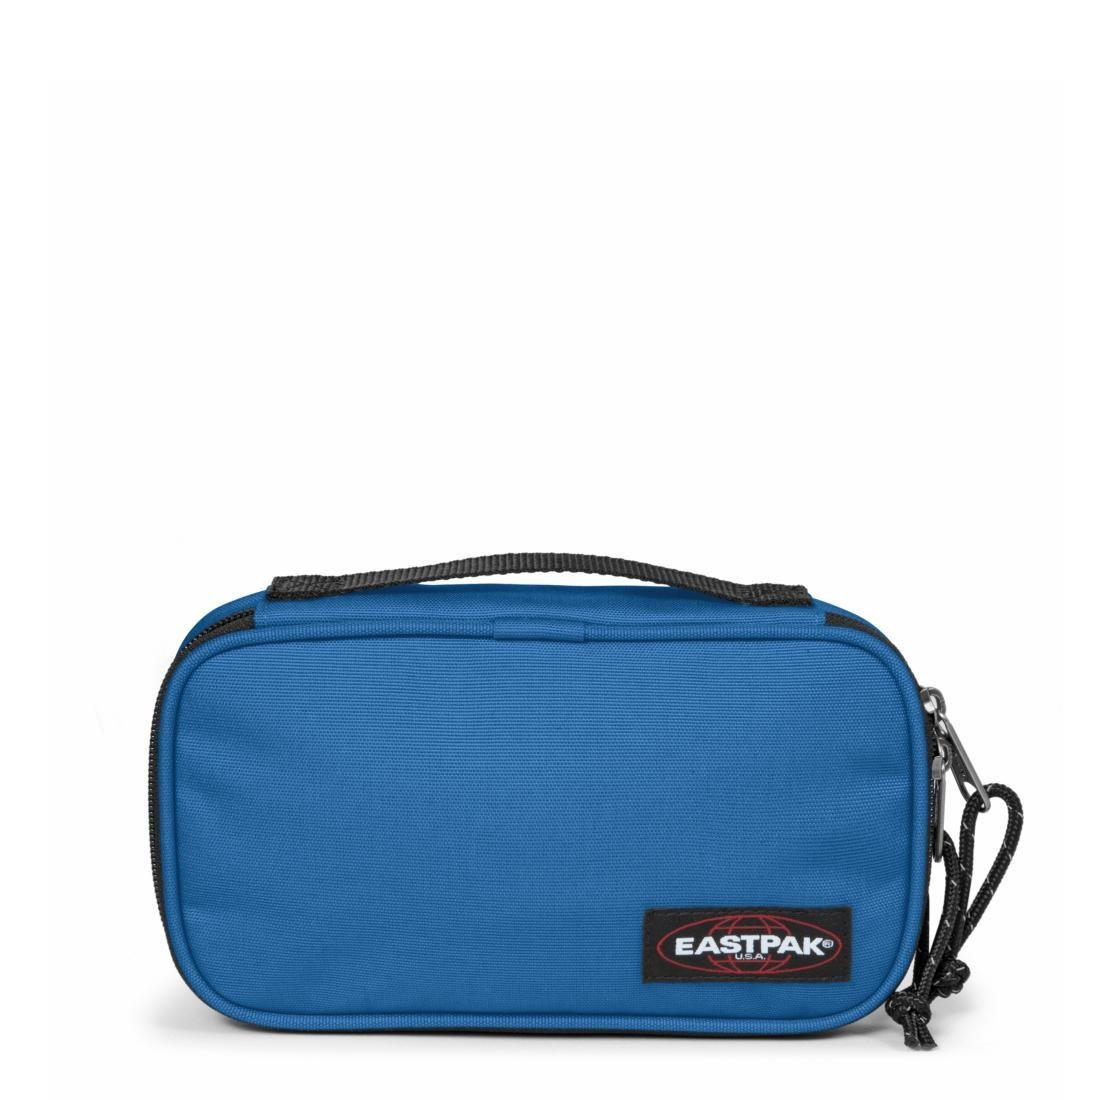 Eastpak Beauty Case Flat Full Tank Blue (azzurro) EK90B 24M